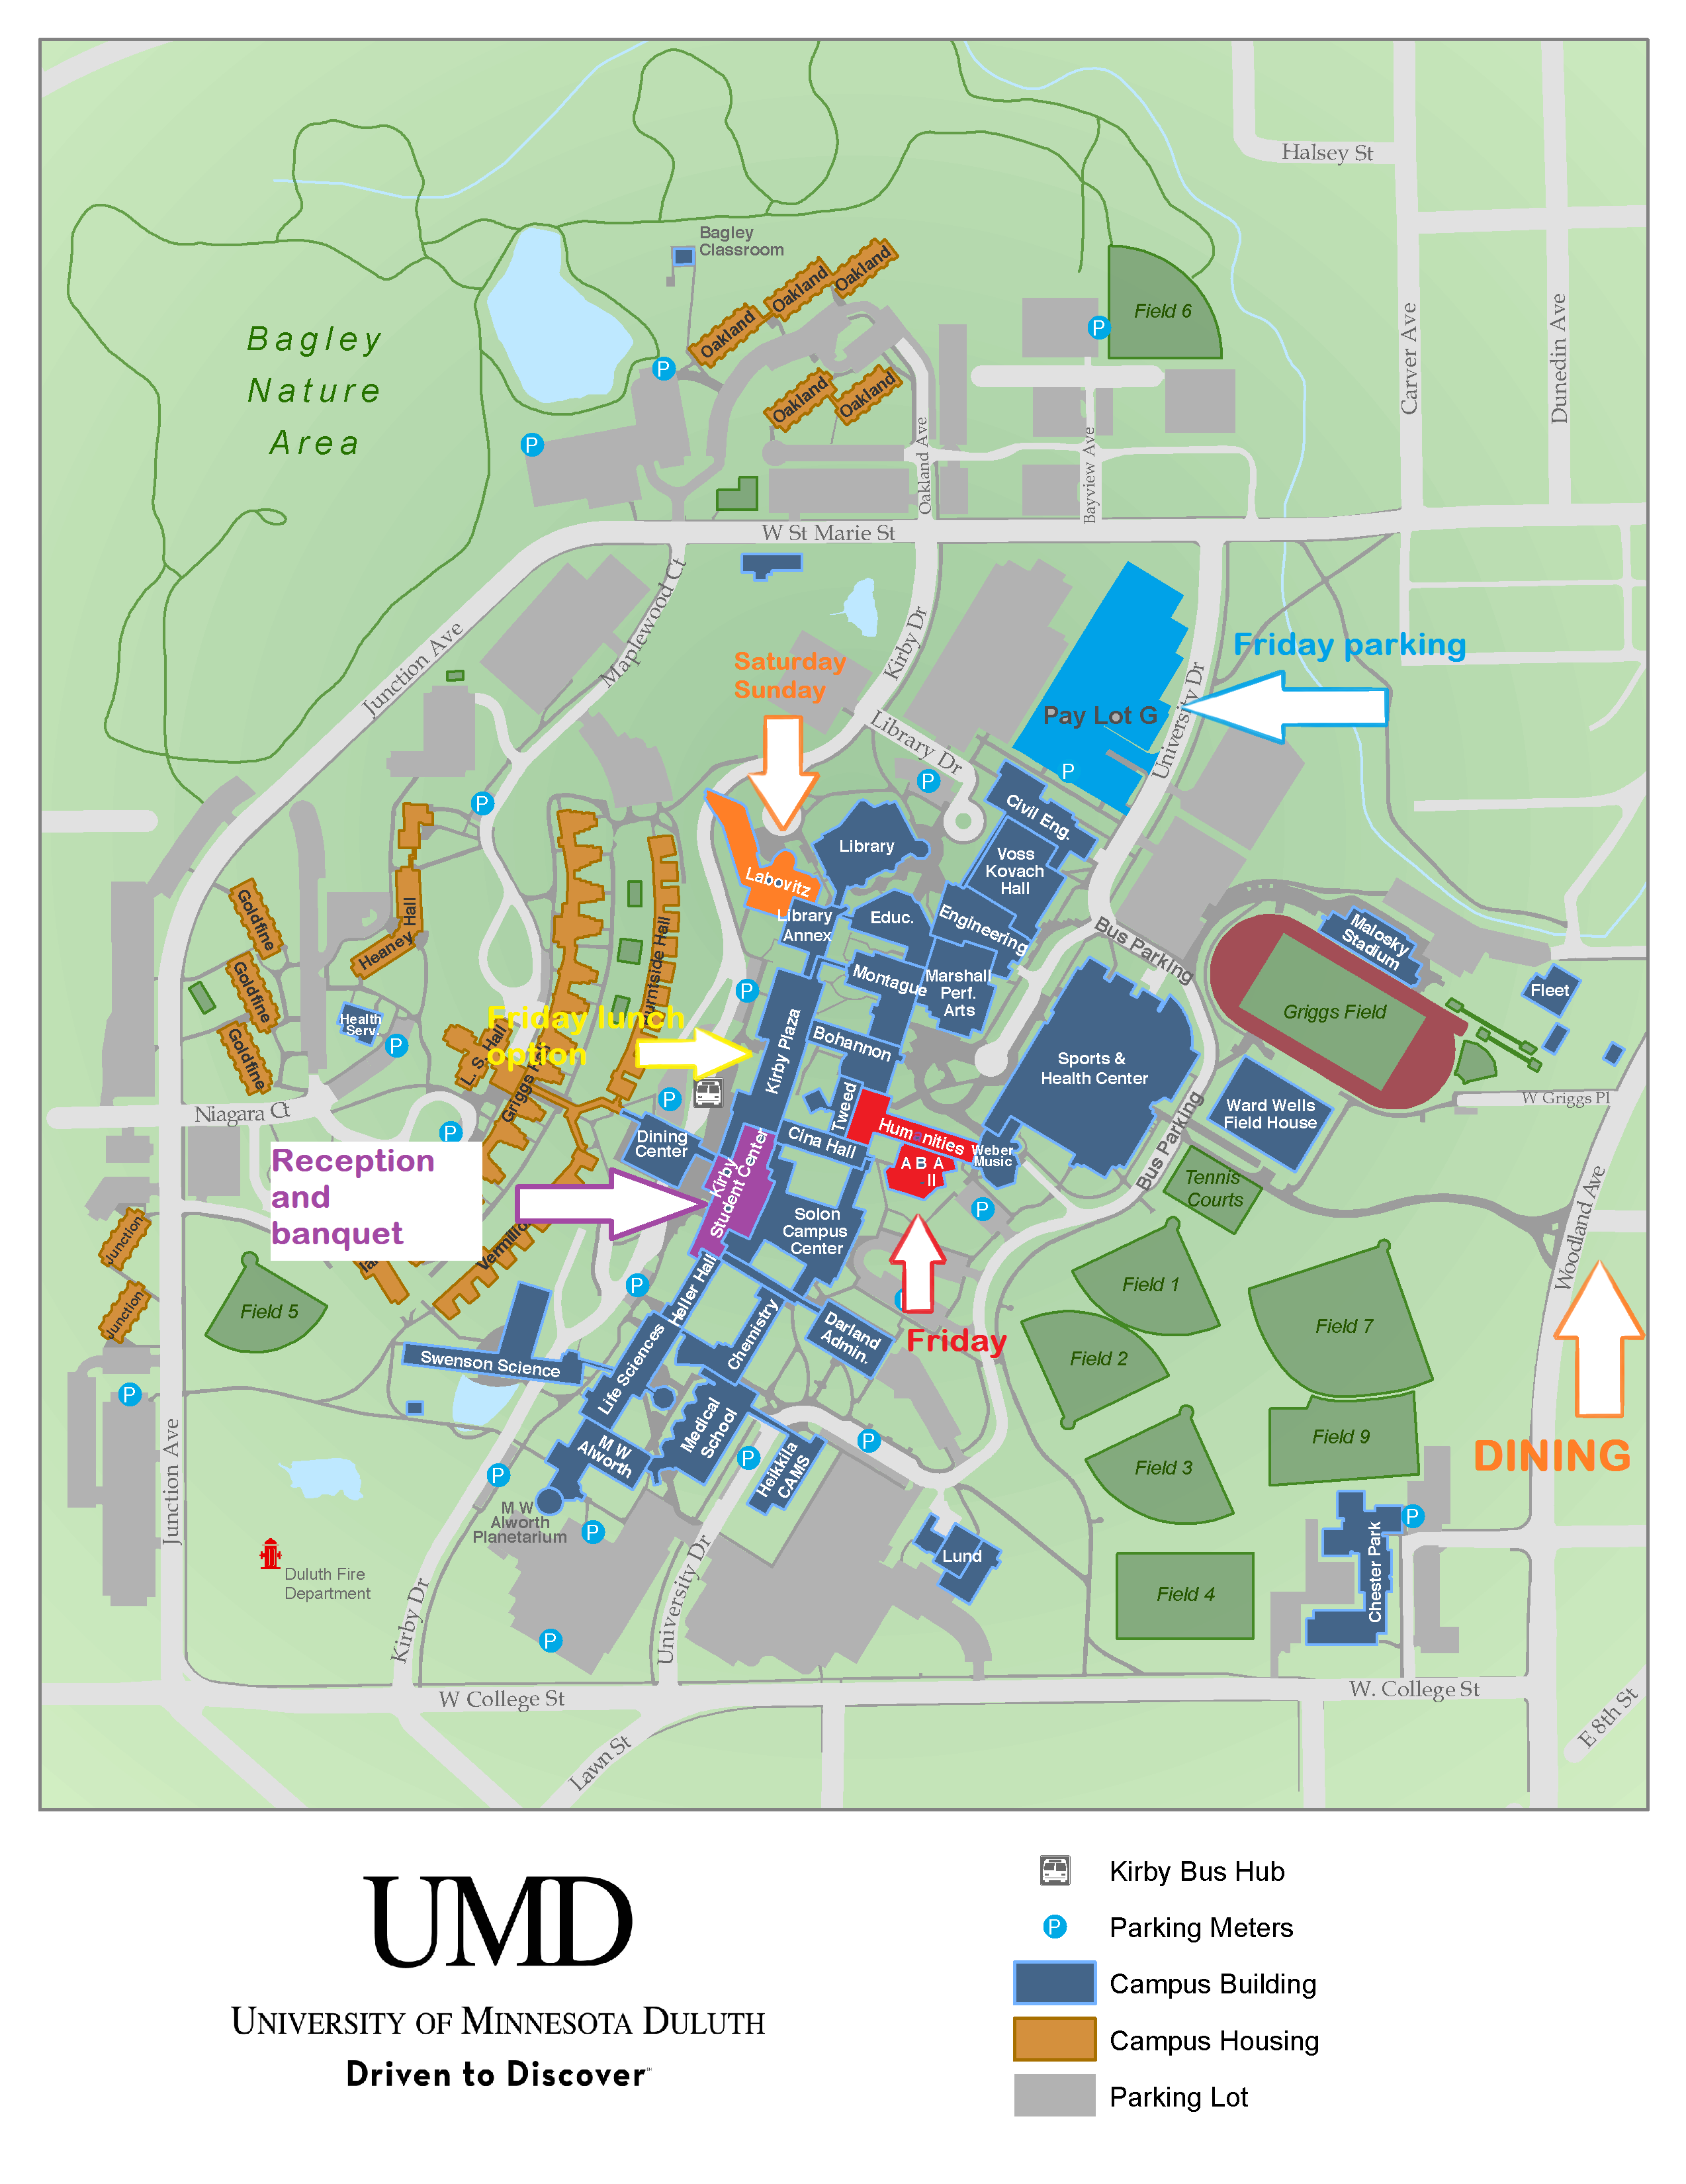 umd map of campus Umd Campus Swenson College Of Science And Engineering Umn Duluth umd map of campus